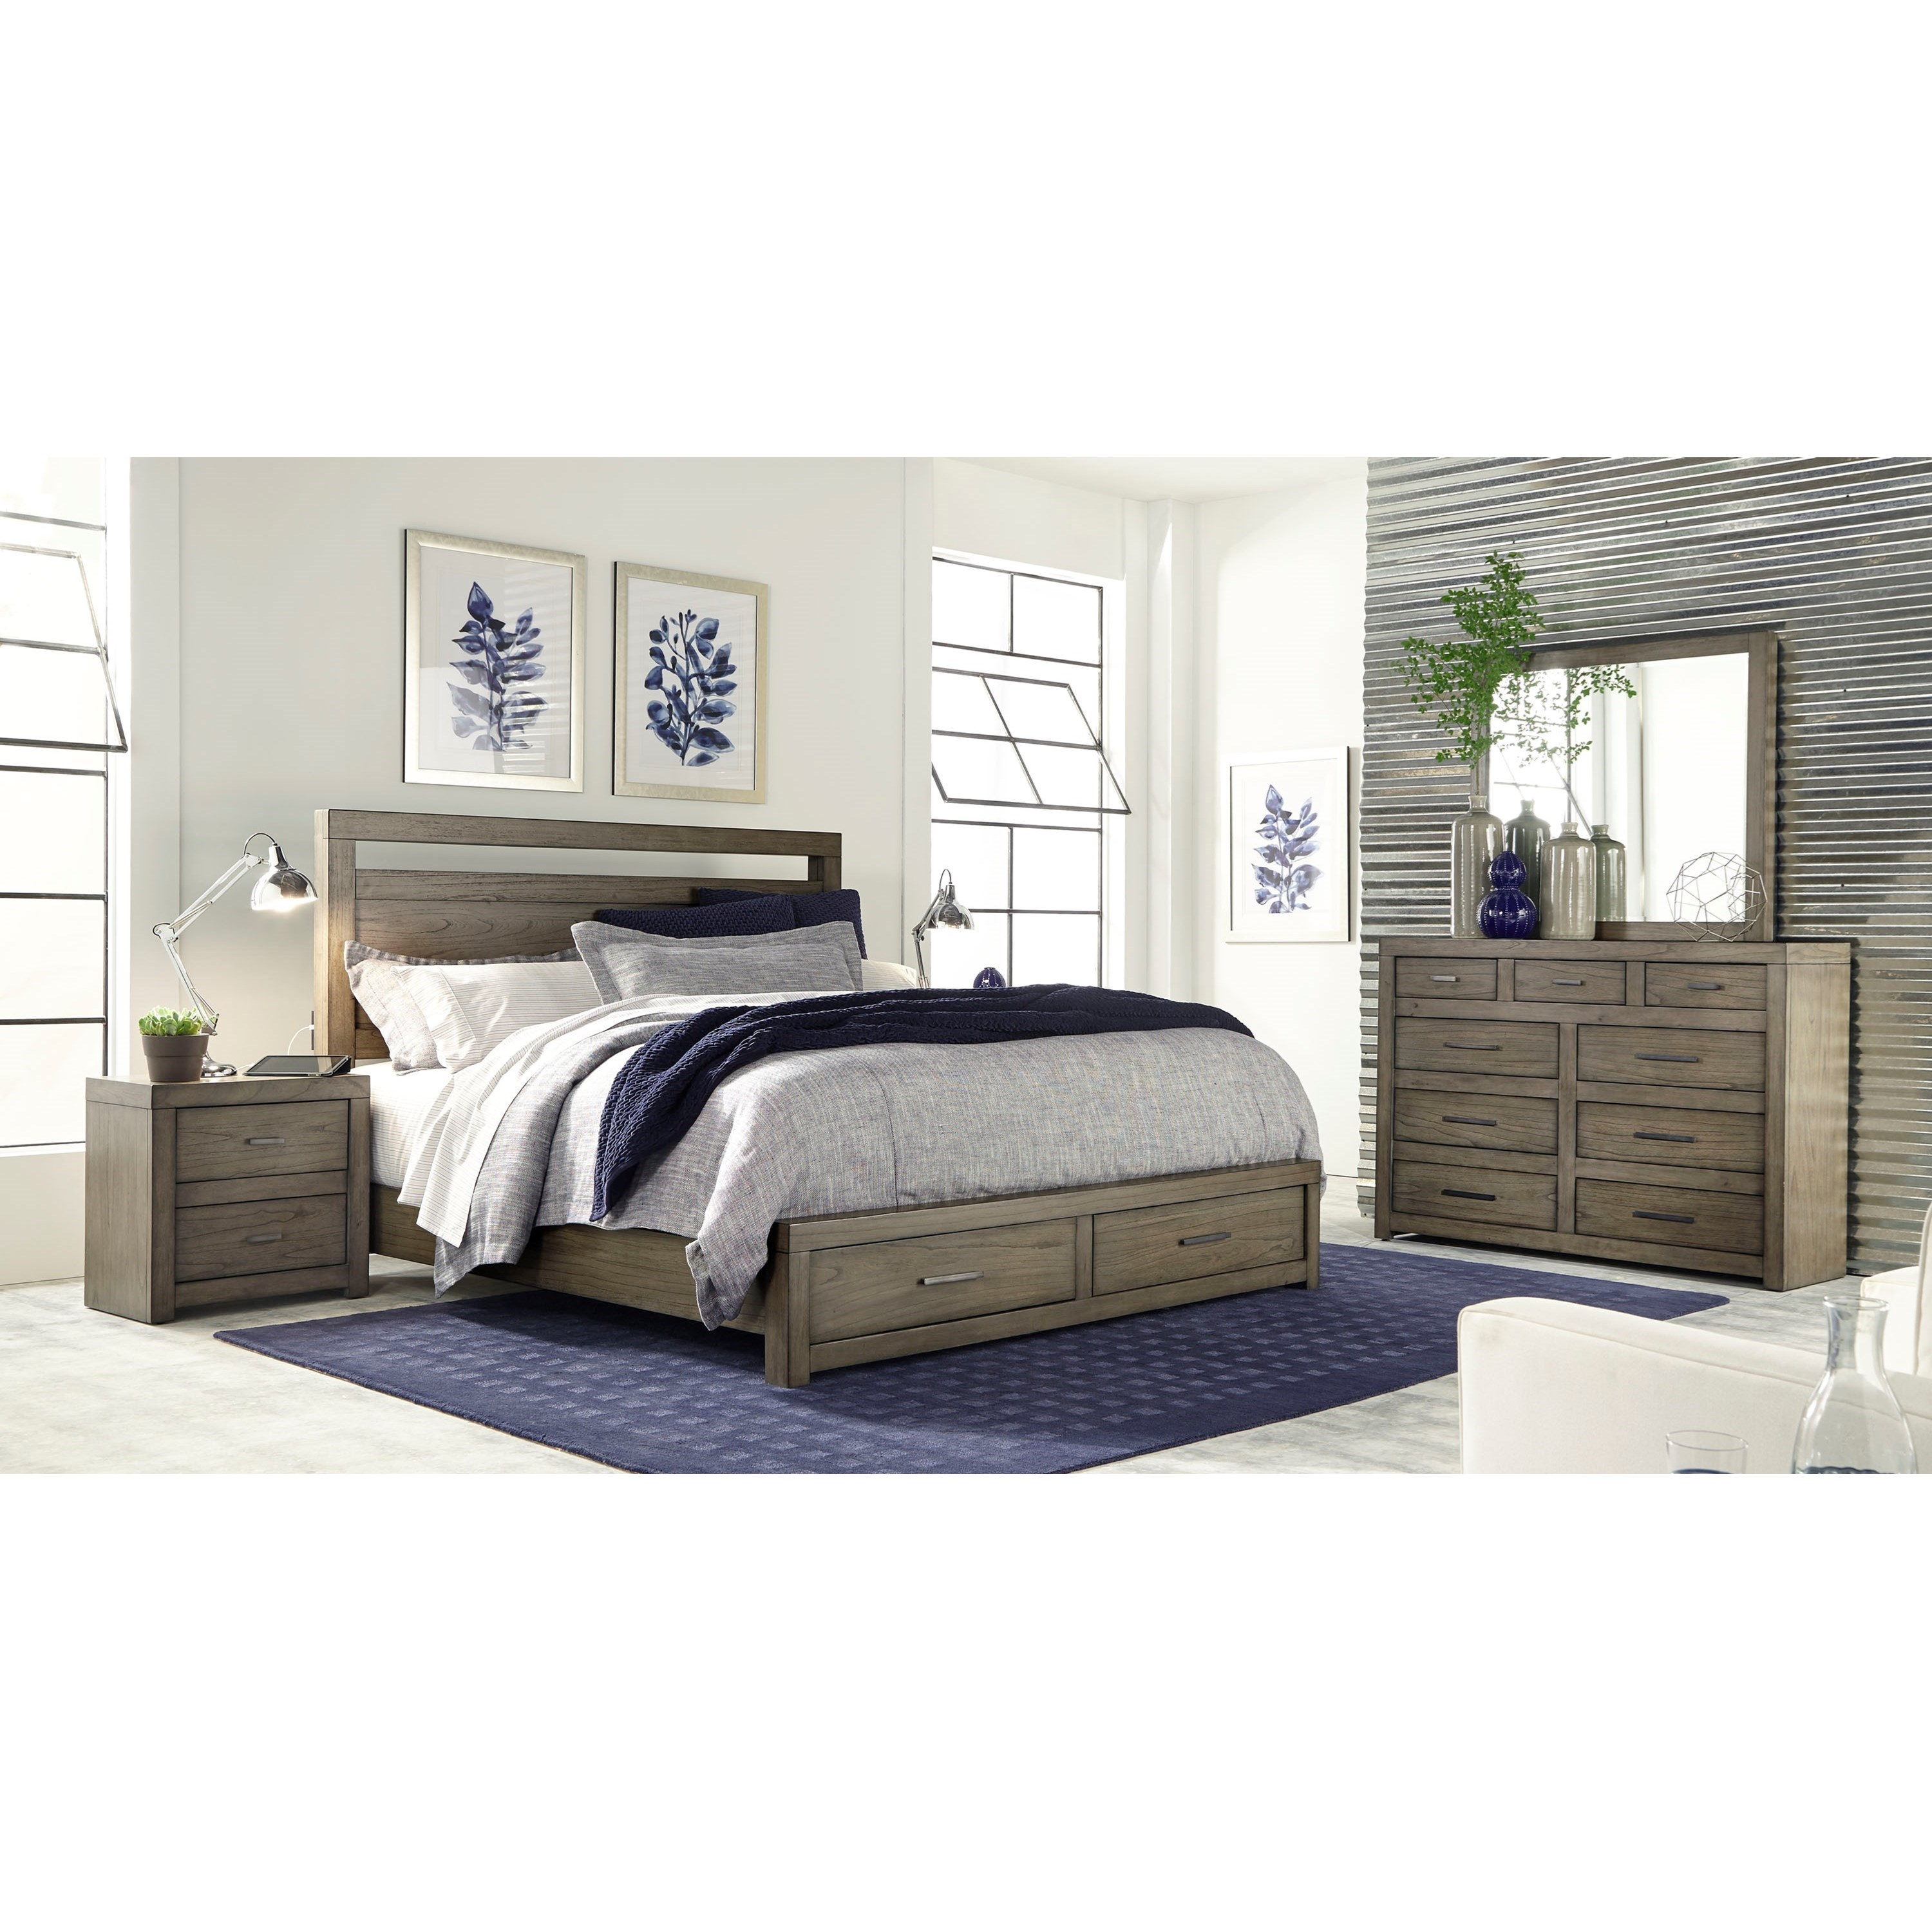 Queen Panel Storage Bed With USB Charging Outlets By